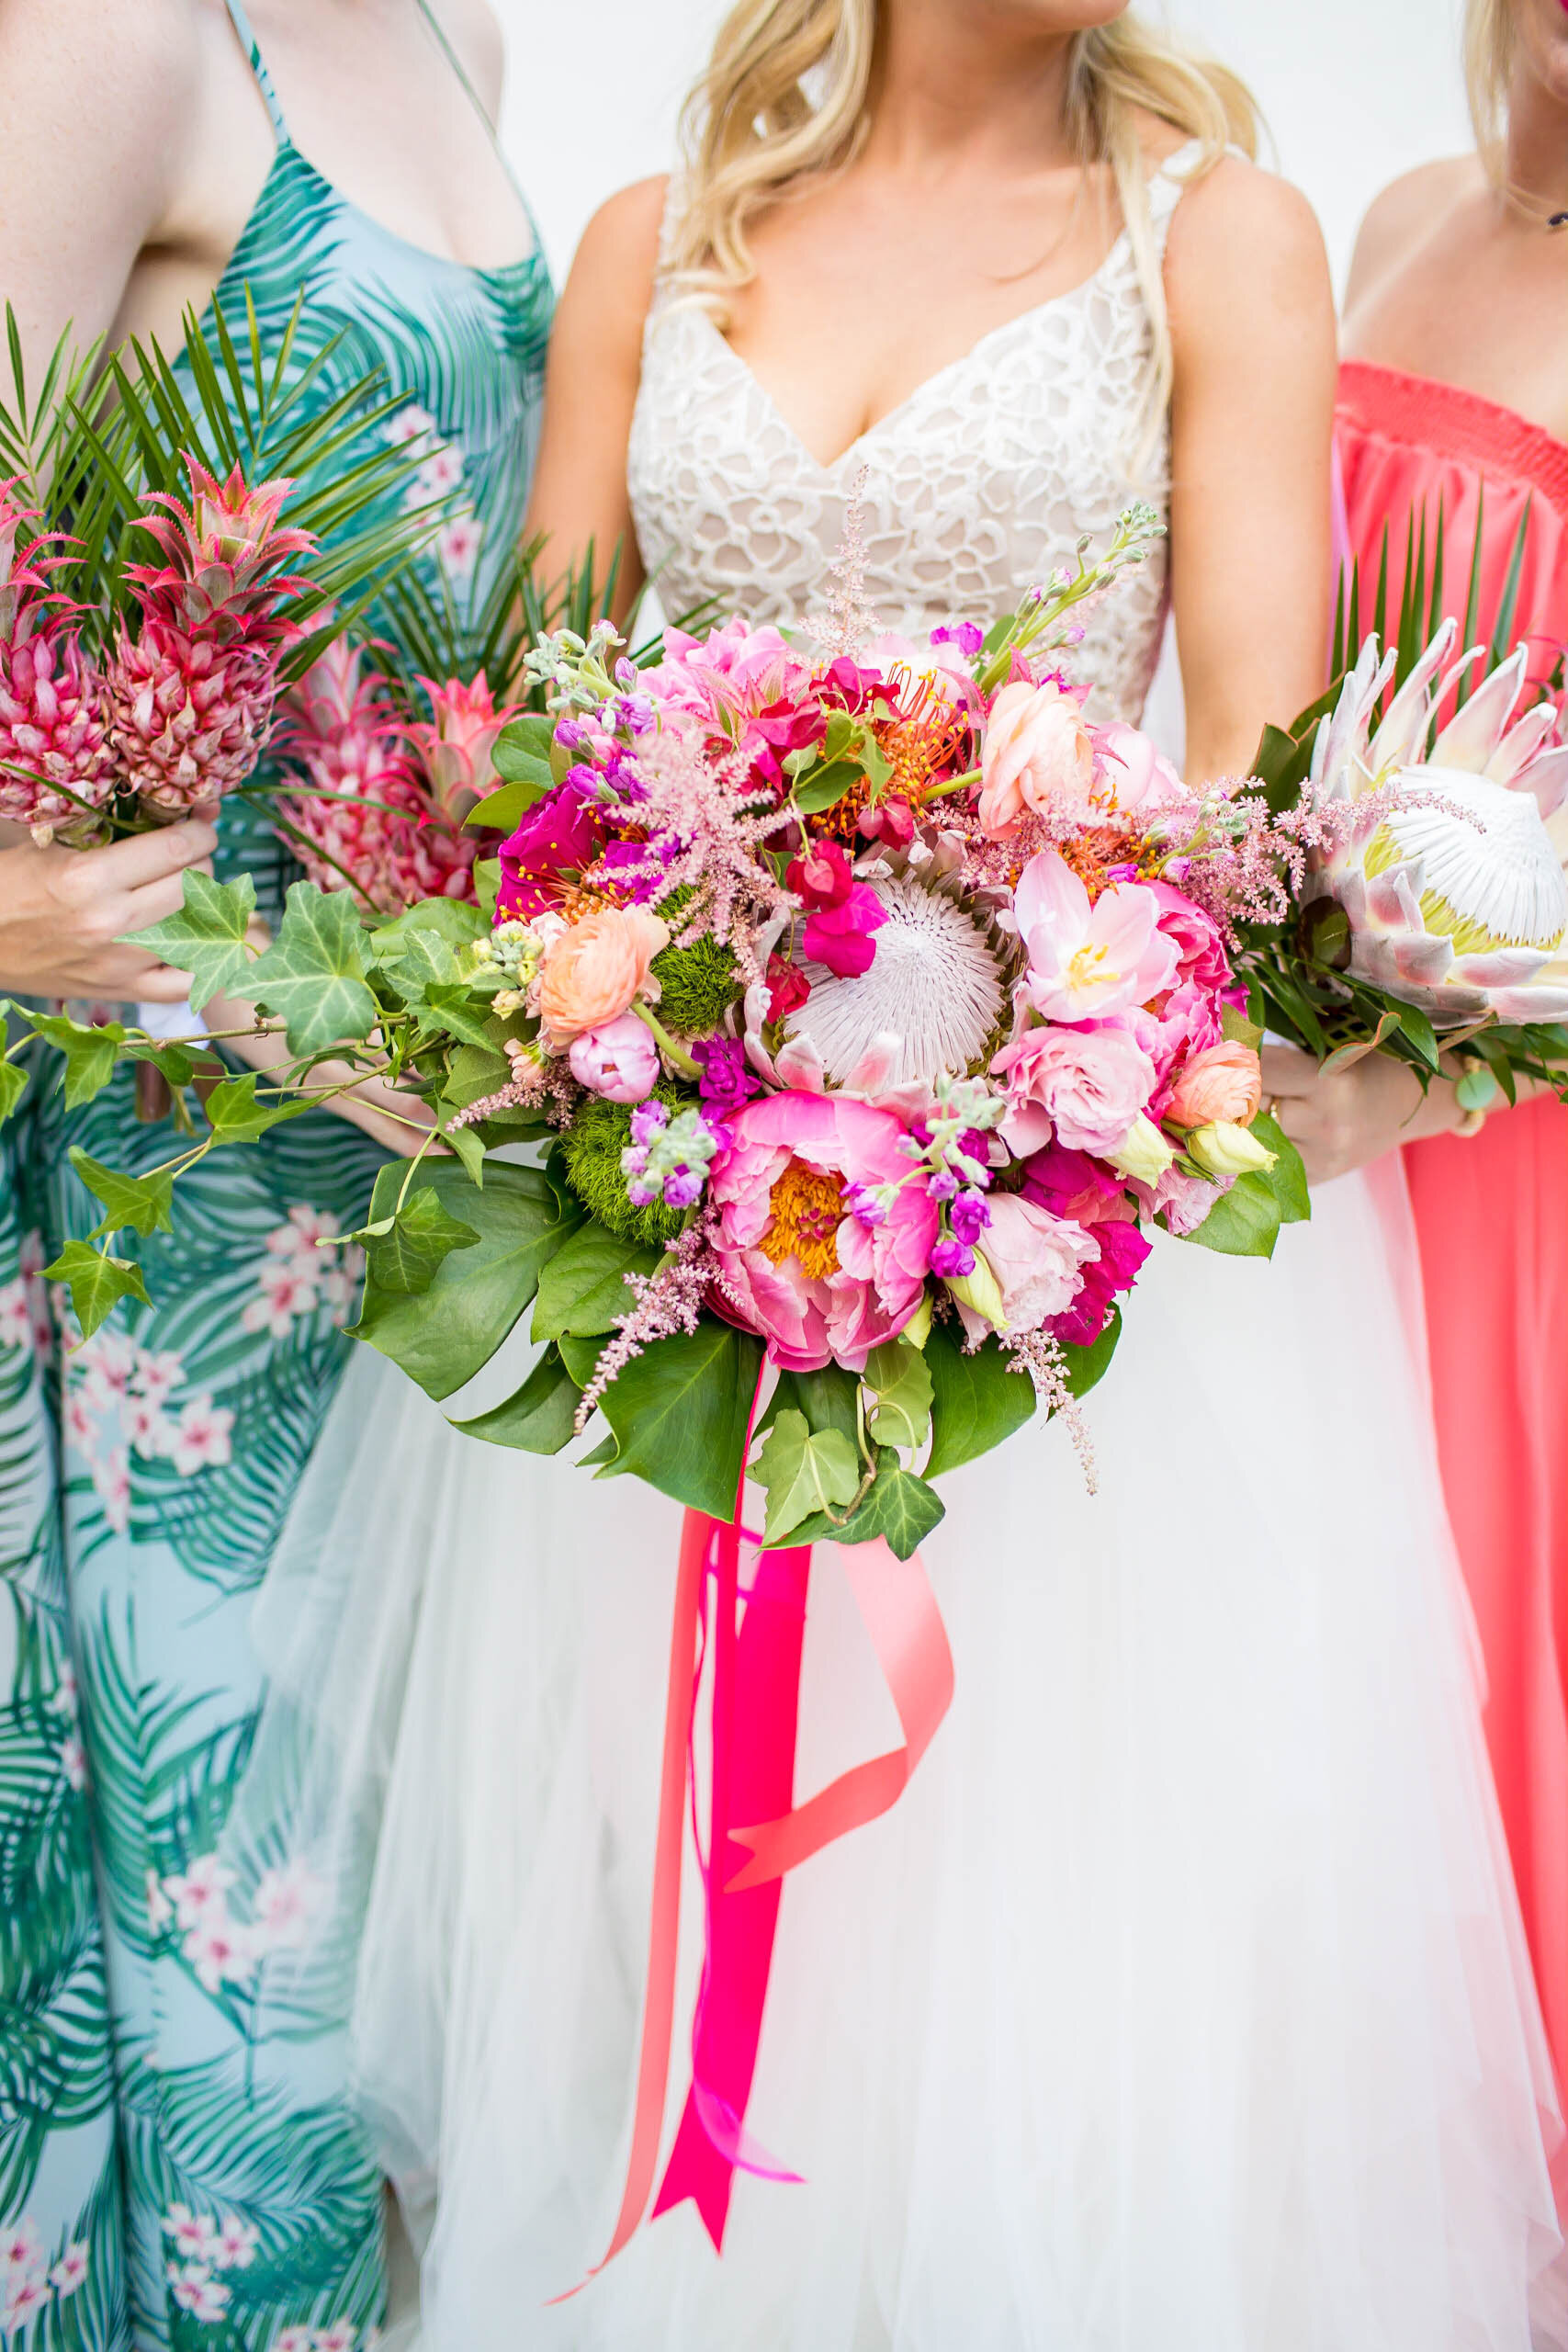 bride and bridesmaids holding colorful flowers